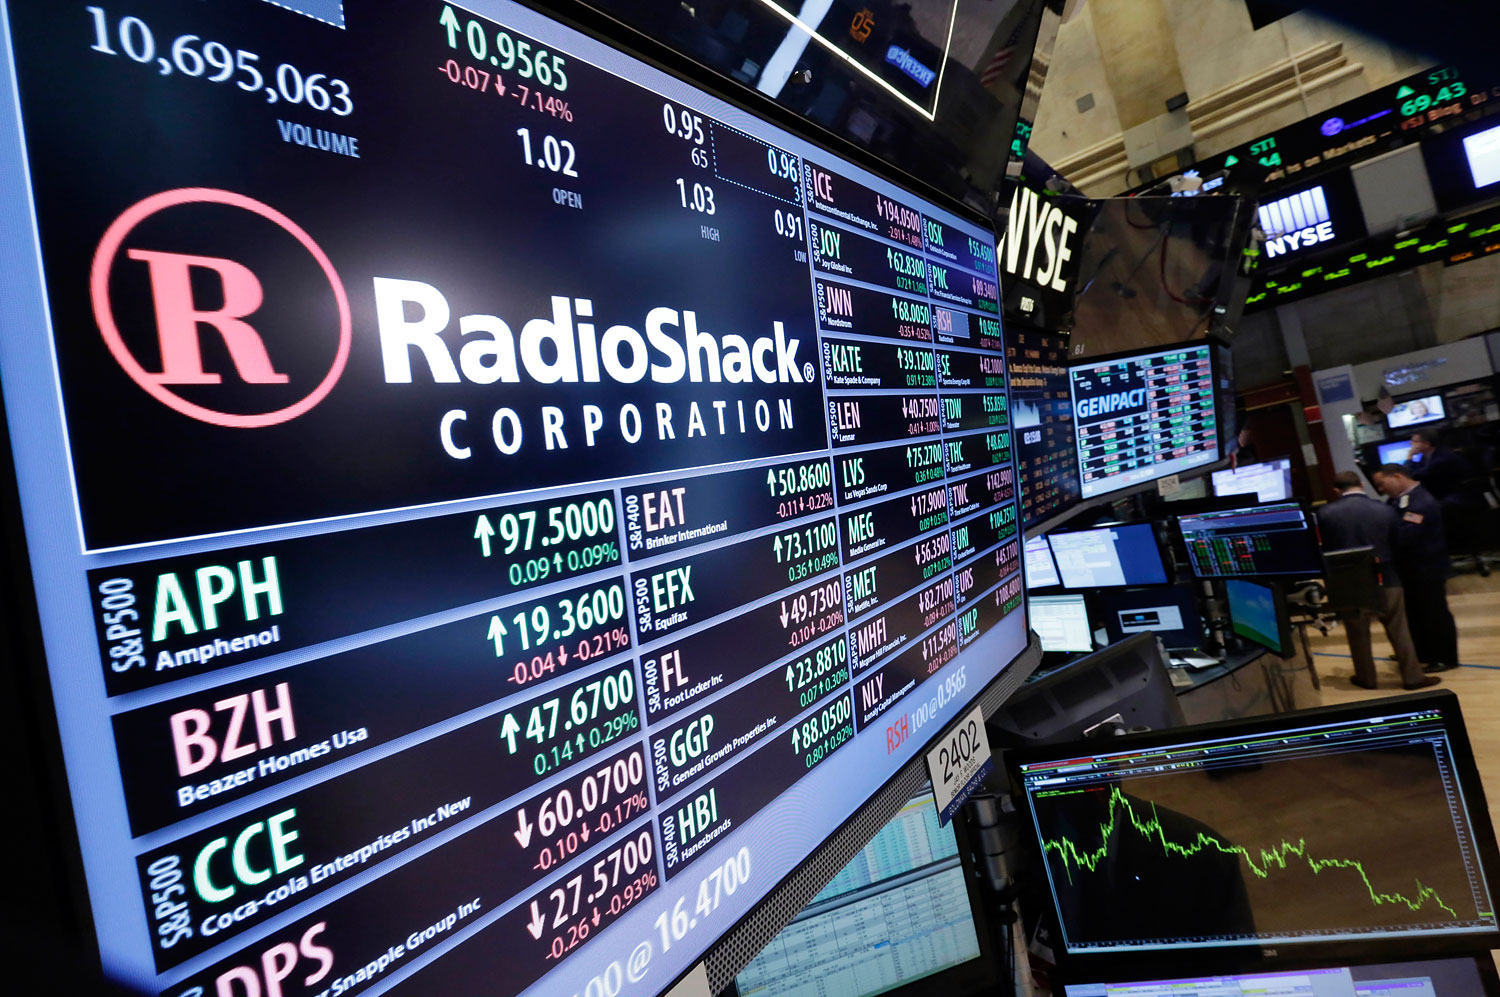 Traders work on the floor of the New York Stock Exchange near the post that handles Radio Shack, June 20, 2014.